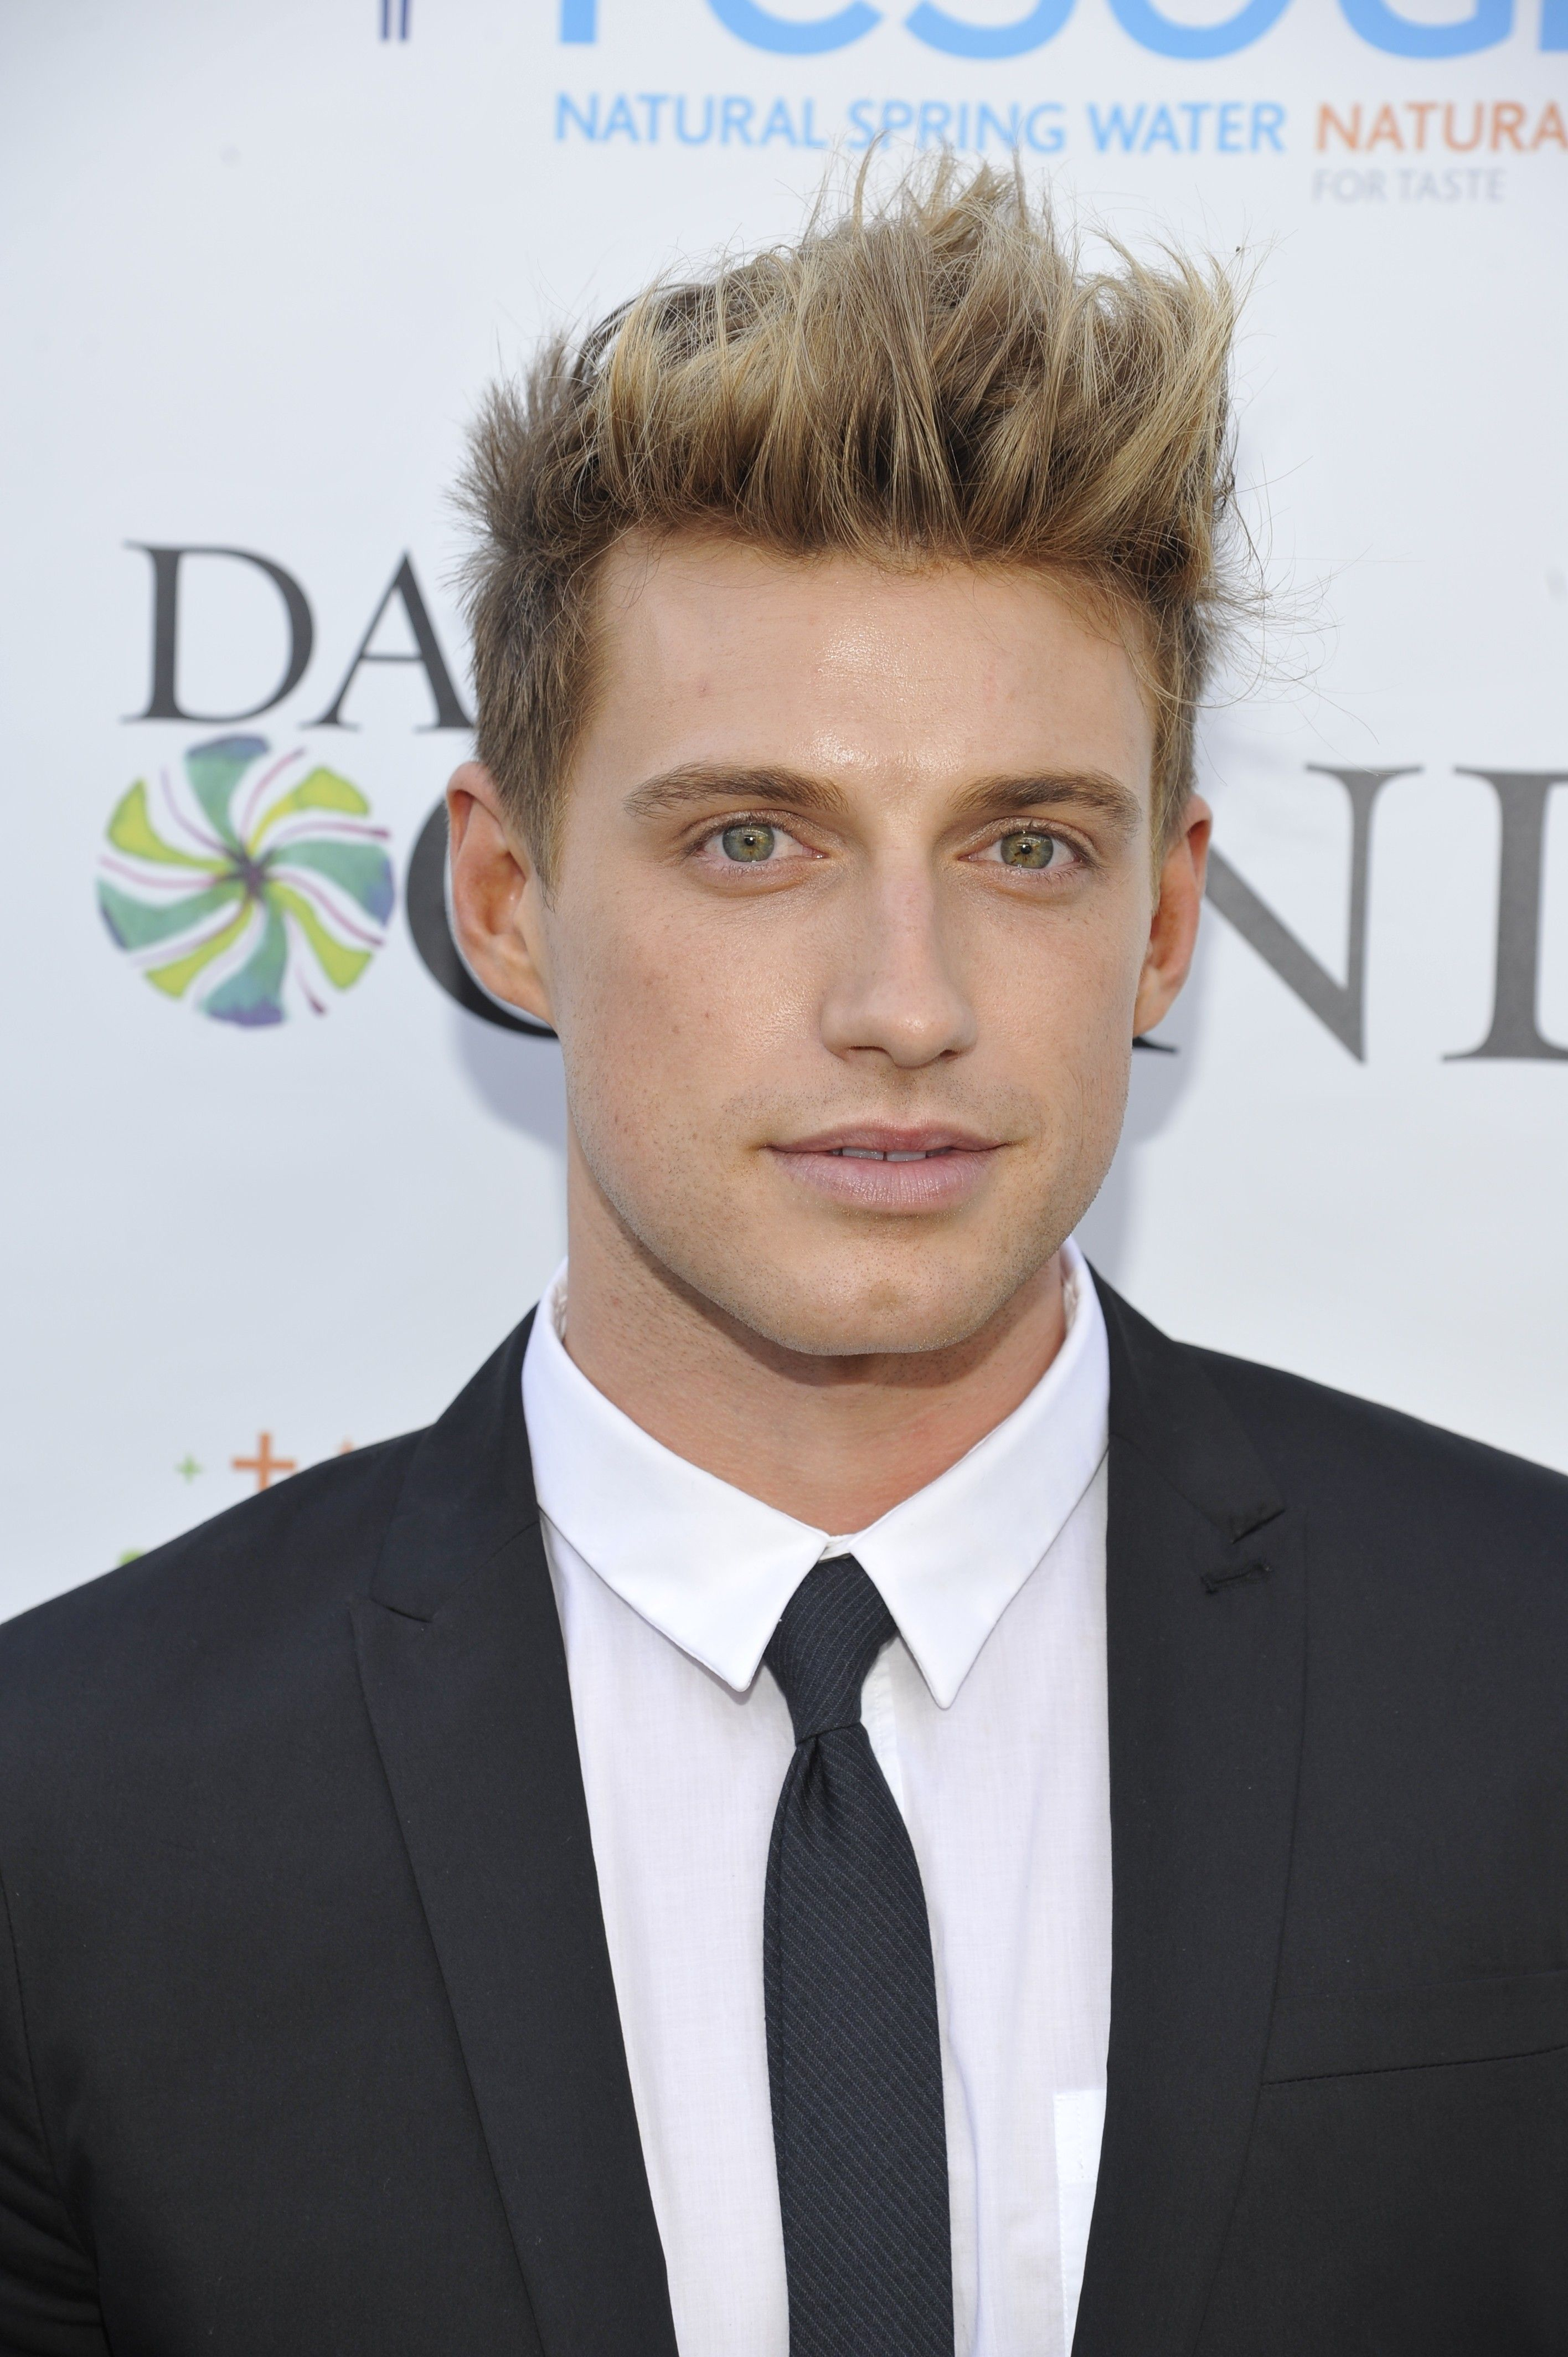 Jeremiah Brent Gives Easy, DIY Tips on How to Style YourSpace